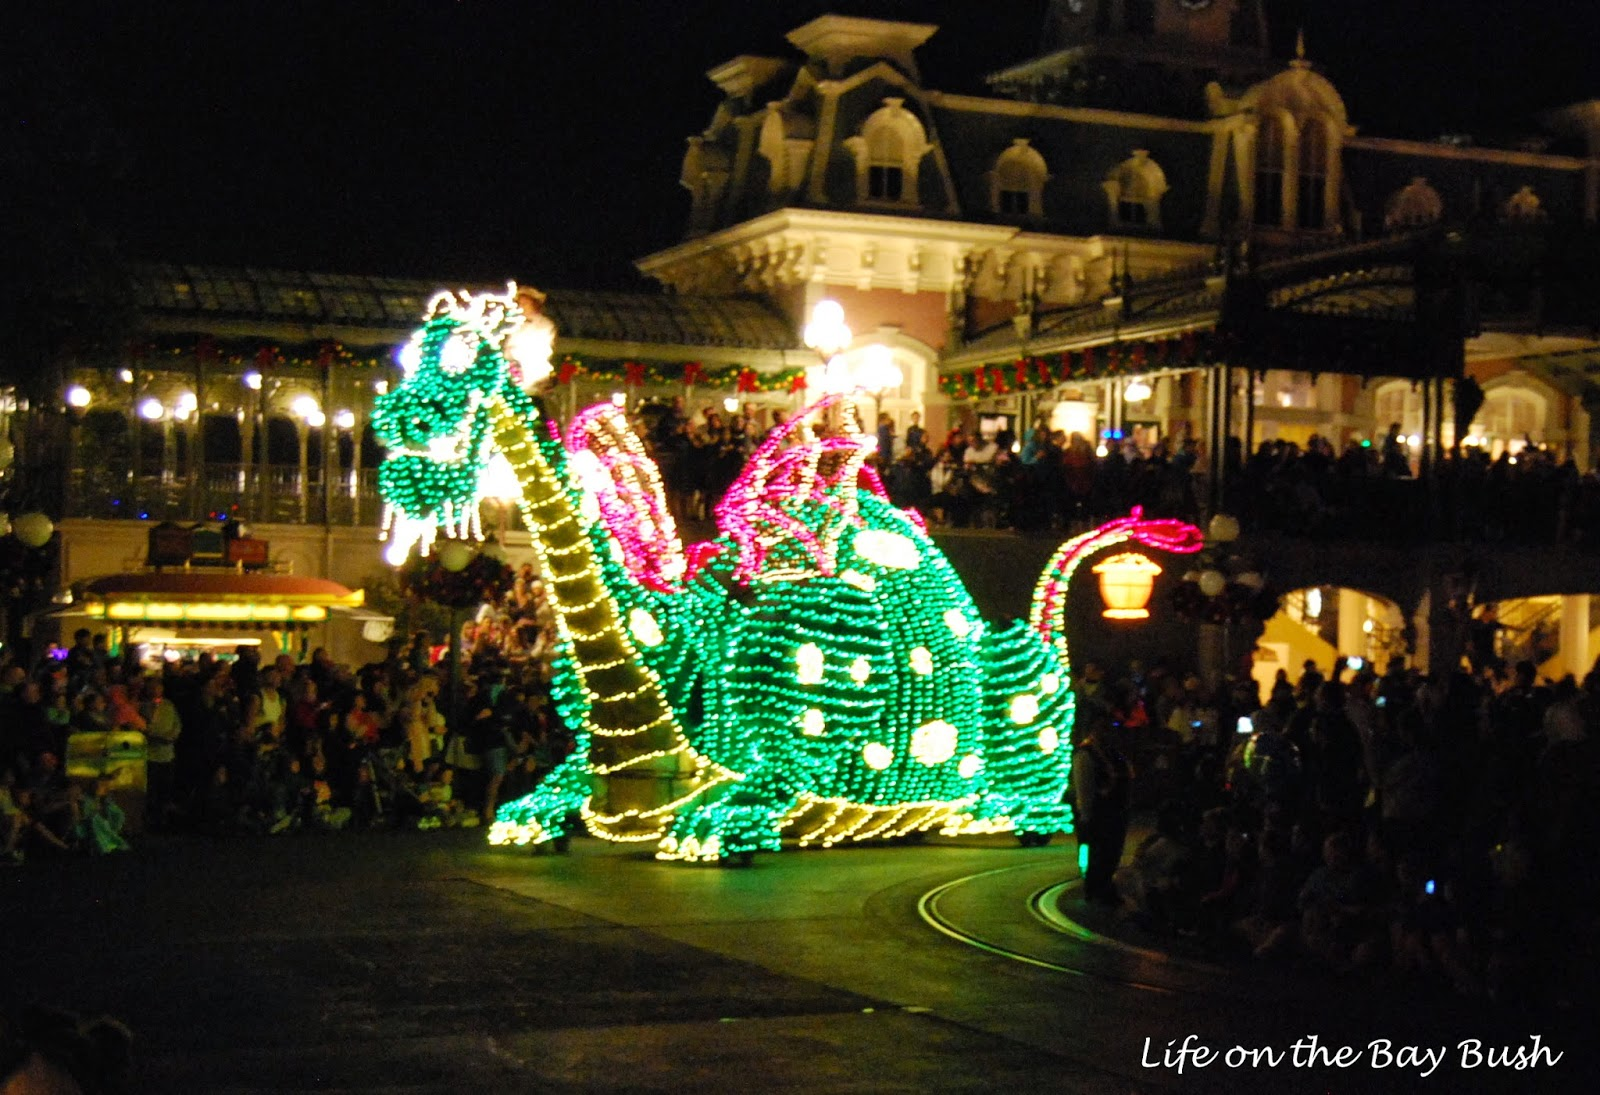 Dino Electrical Light Parade at the Magic Kingdom